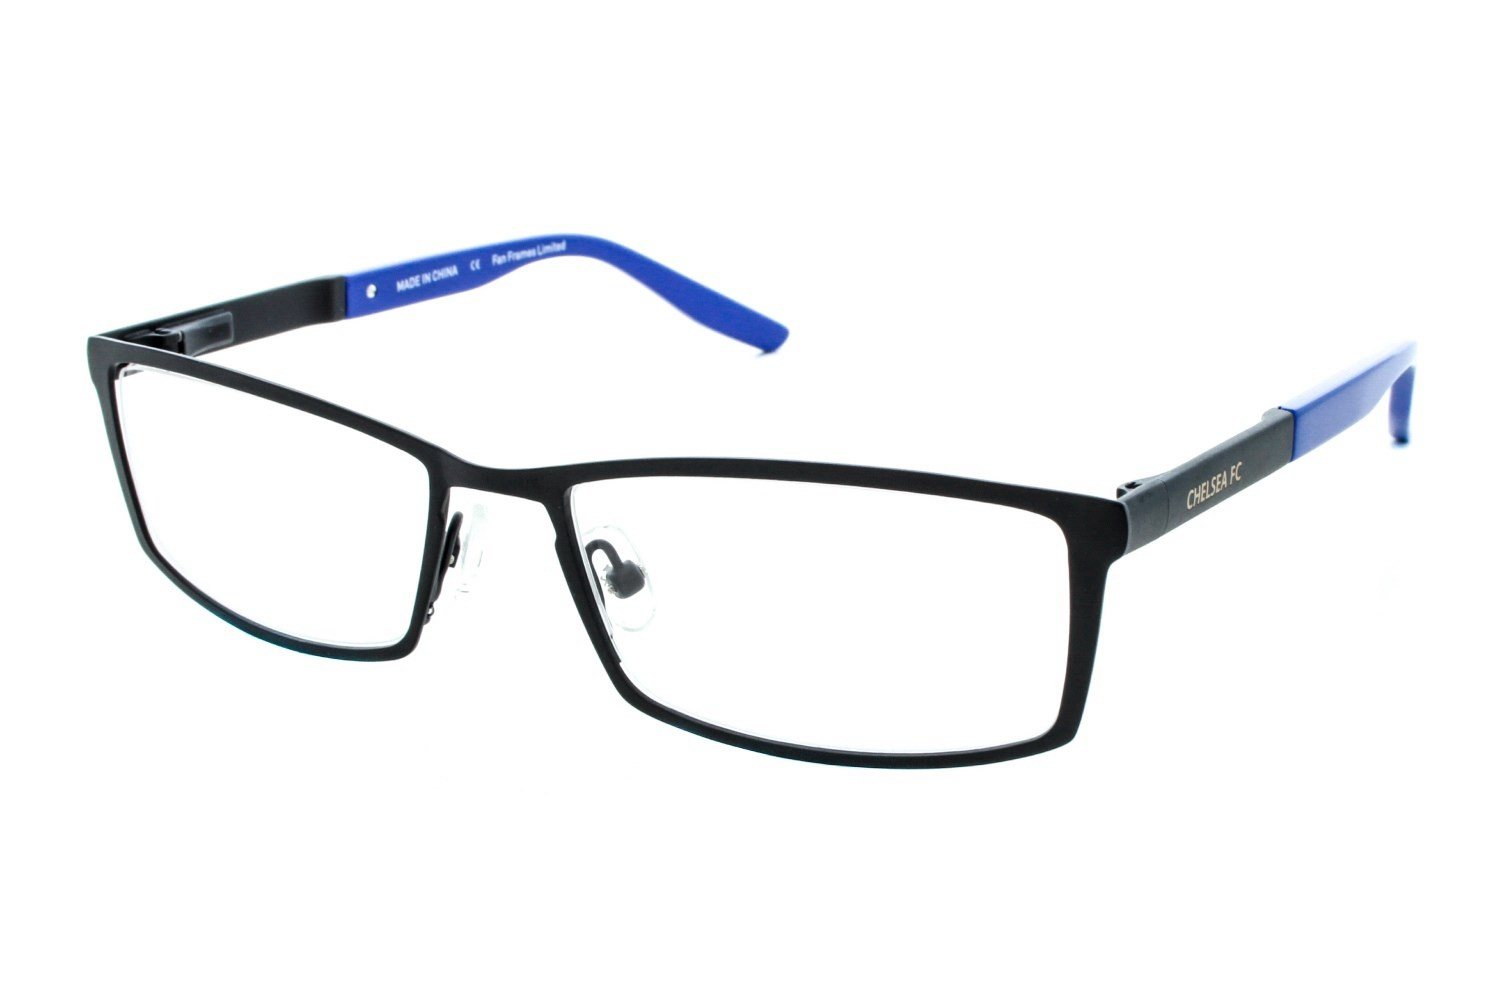 fan-frames-chelsea-fc-metal-prescription-eyeglasses